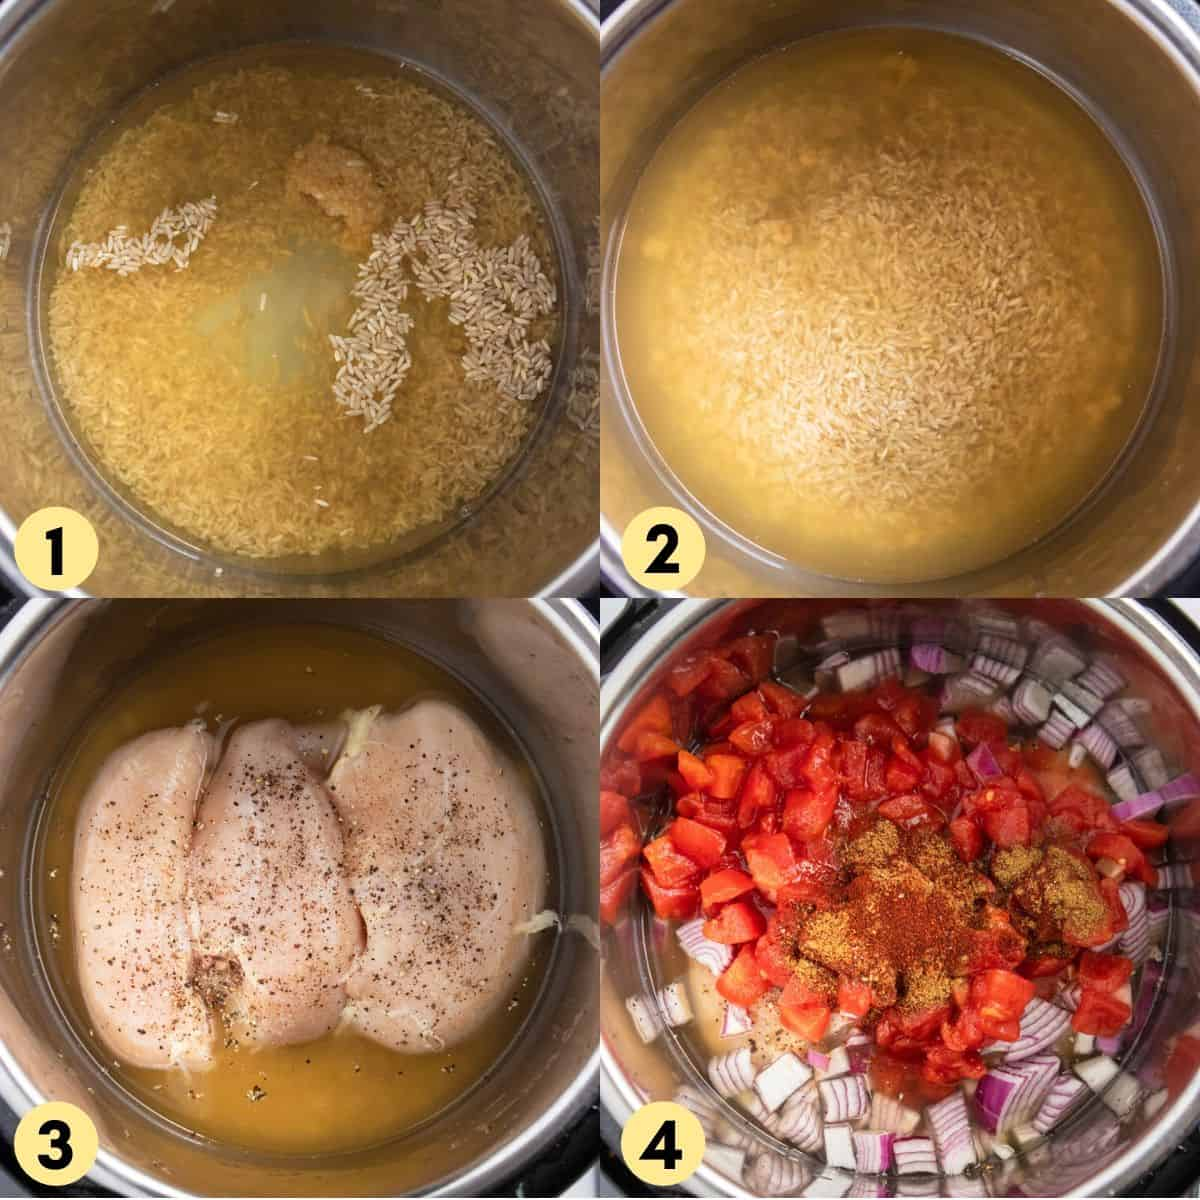 Process photos with chicken, rice and broth in instant pot.